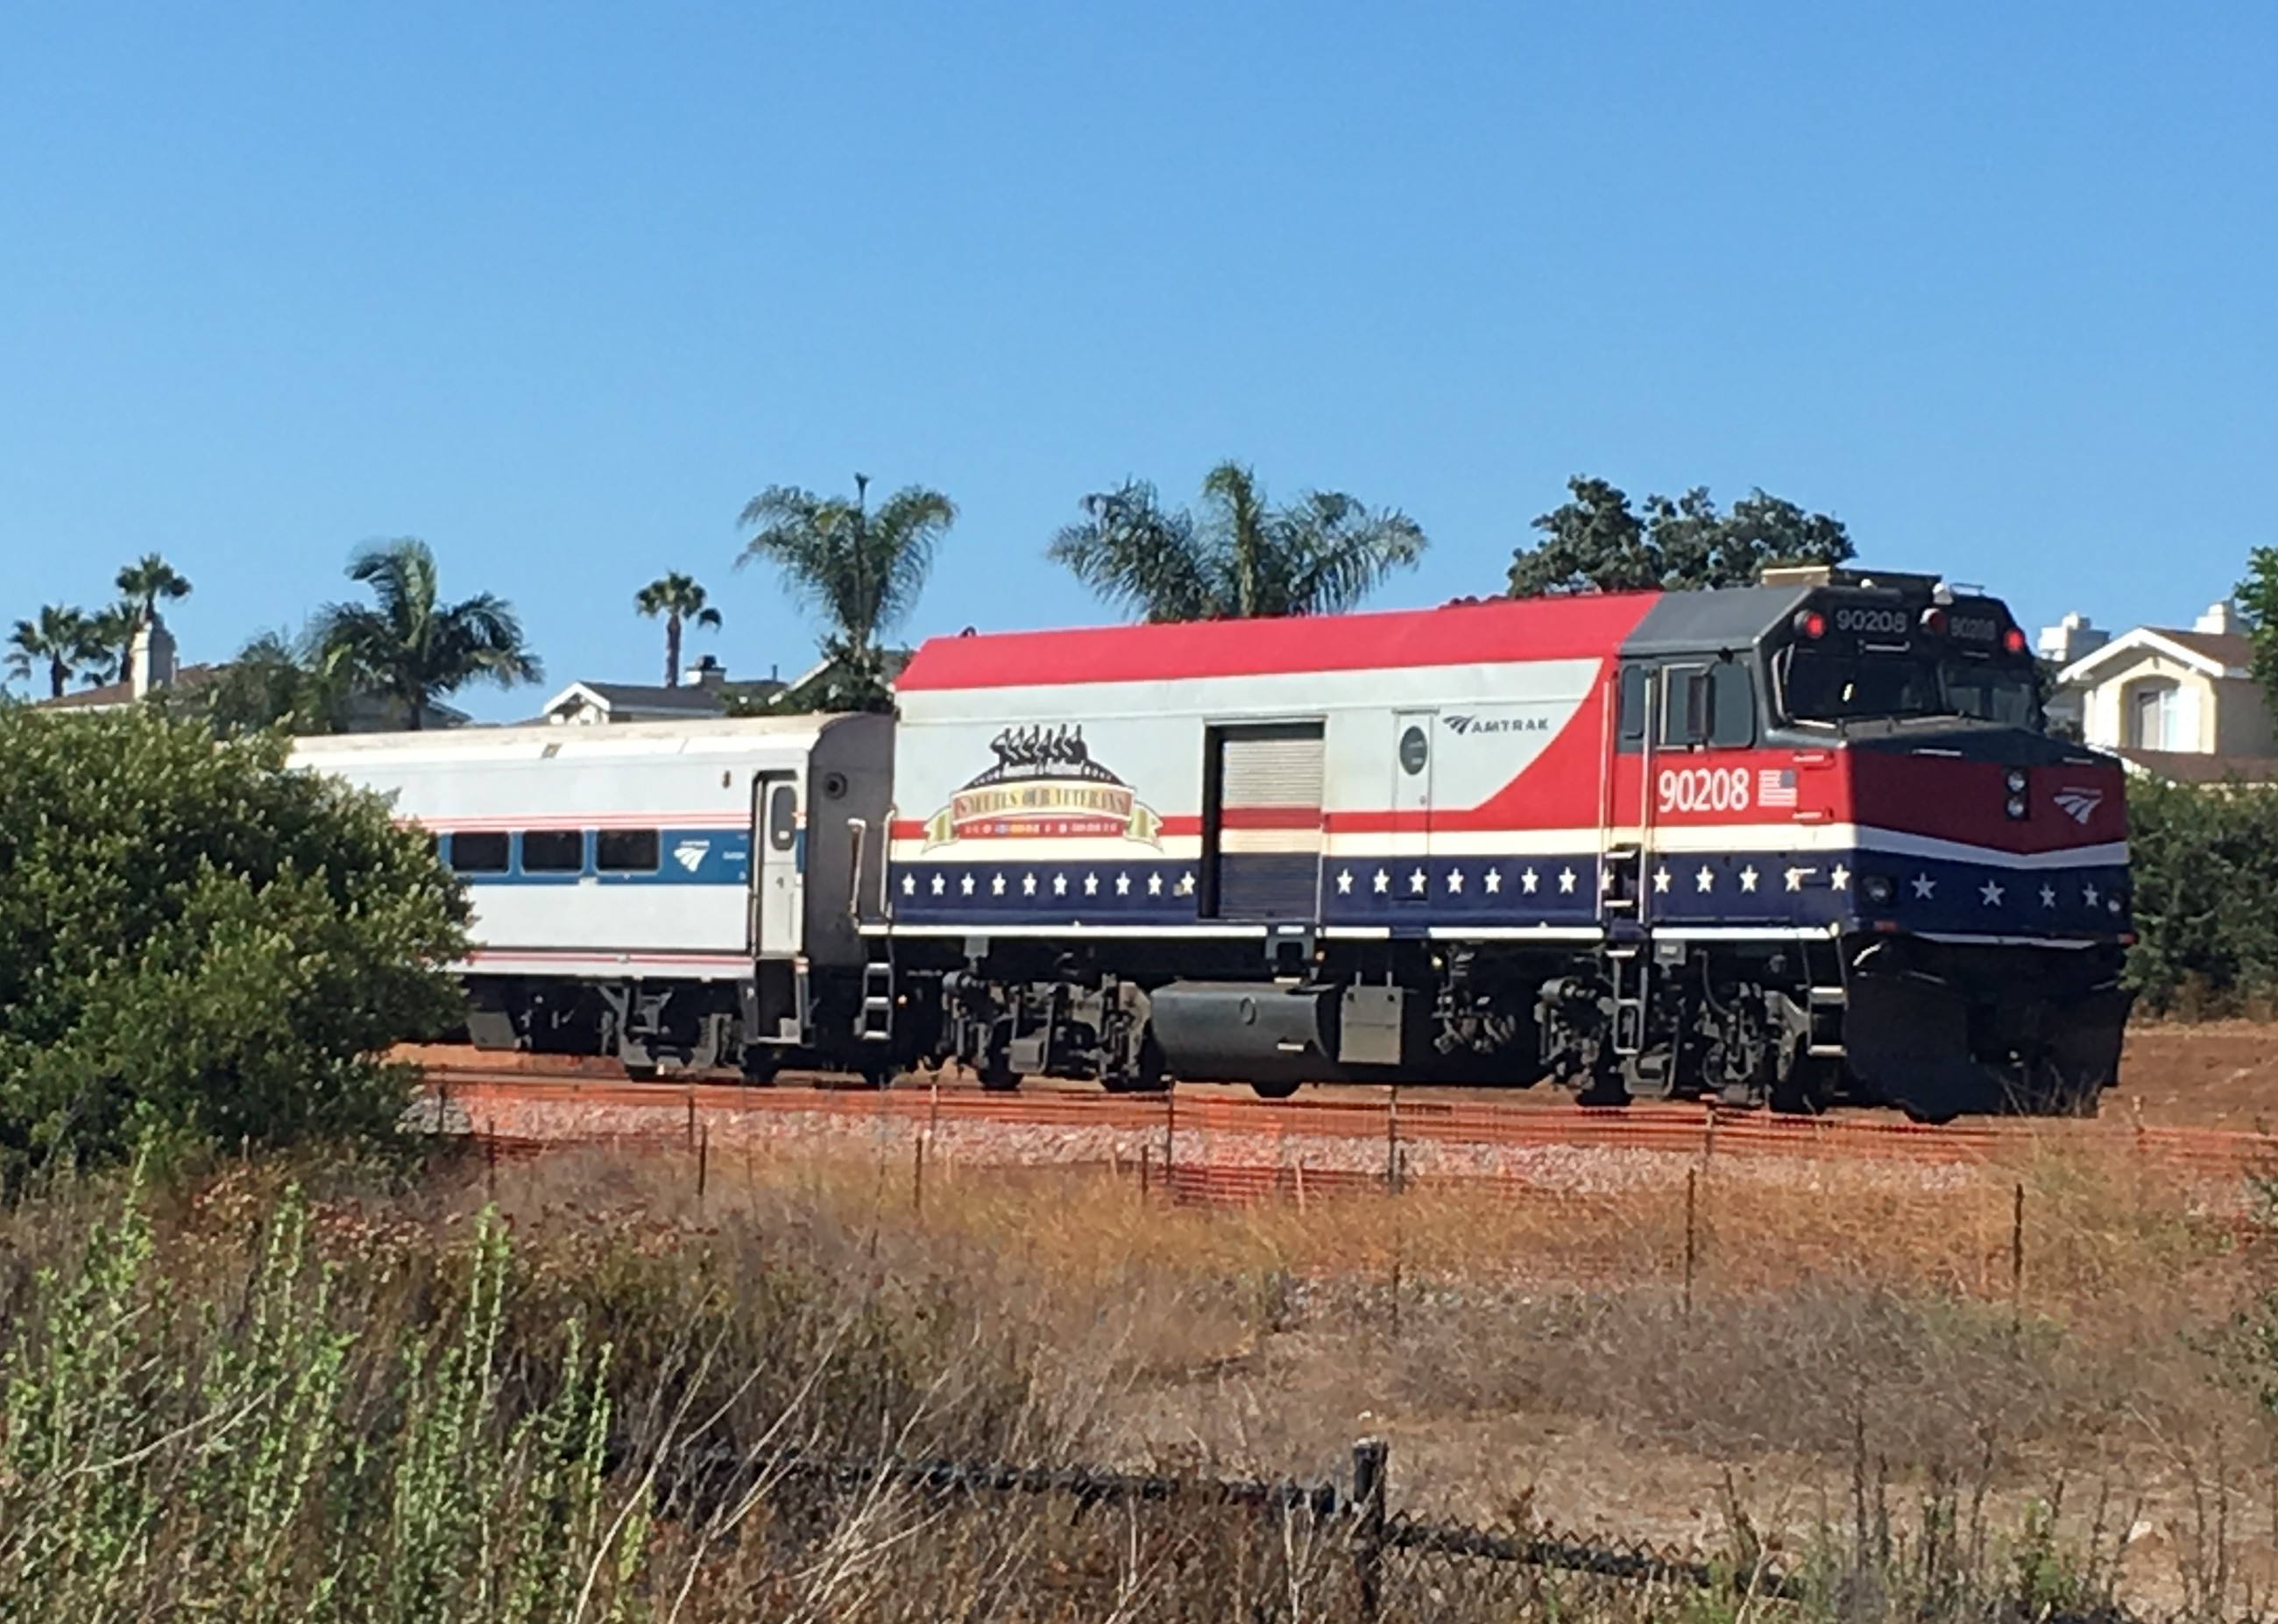 A person was hit and killed by an Amtrak train on July 23 at the Poinsettia Station in Carlsbad. Steve Puterski photo